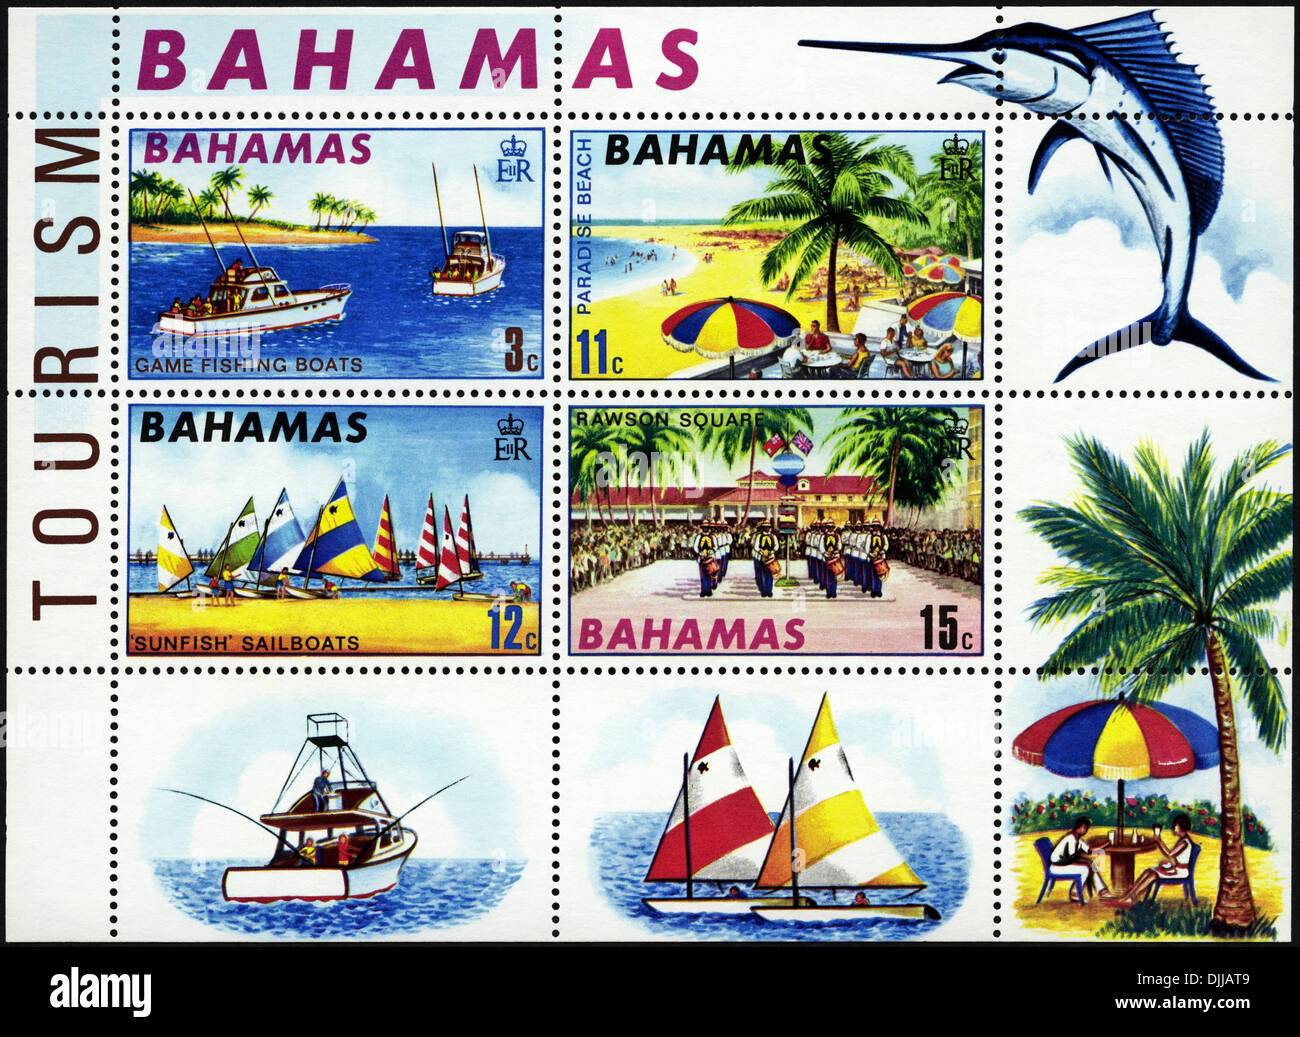 postage stamp Bahamas featuring 4 tourism souvenir stamps issued 1969 - Stock Image